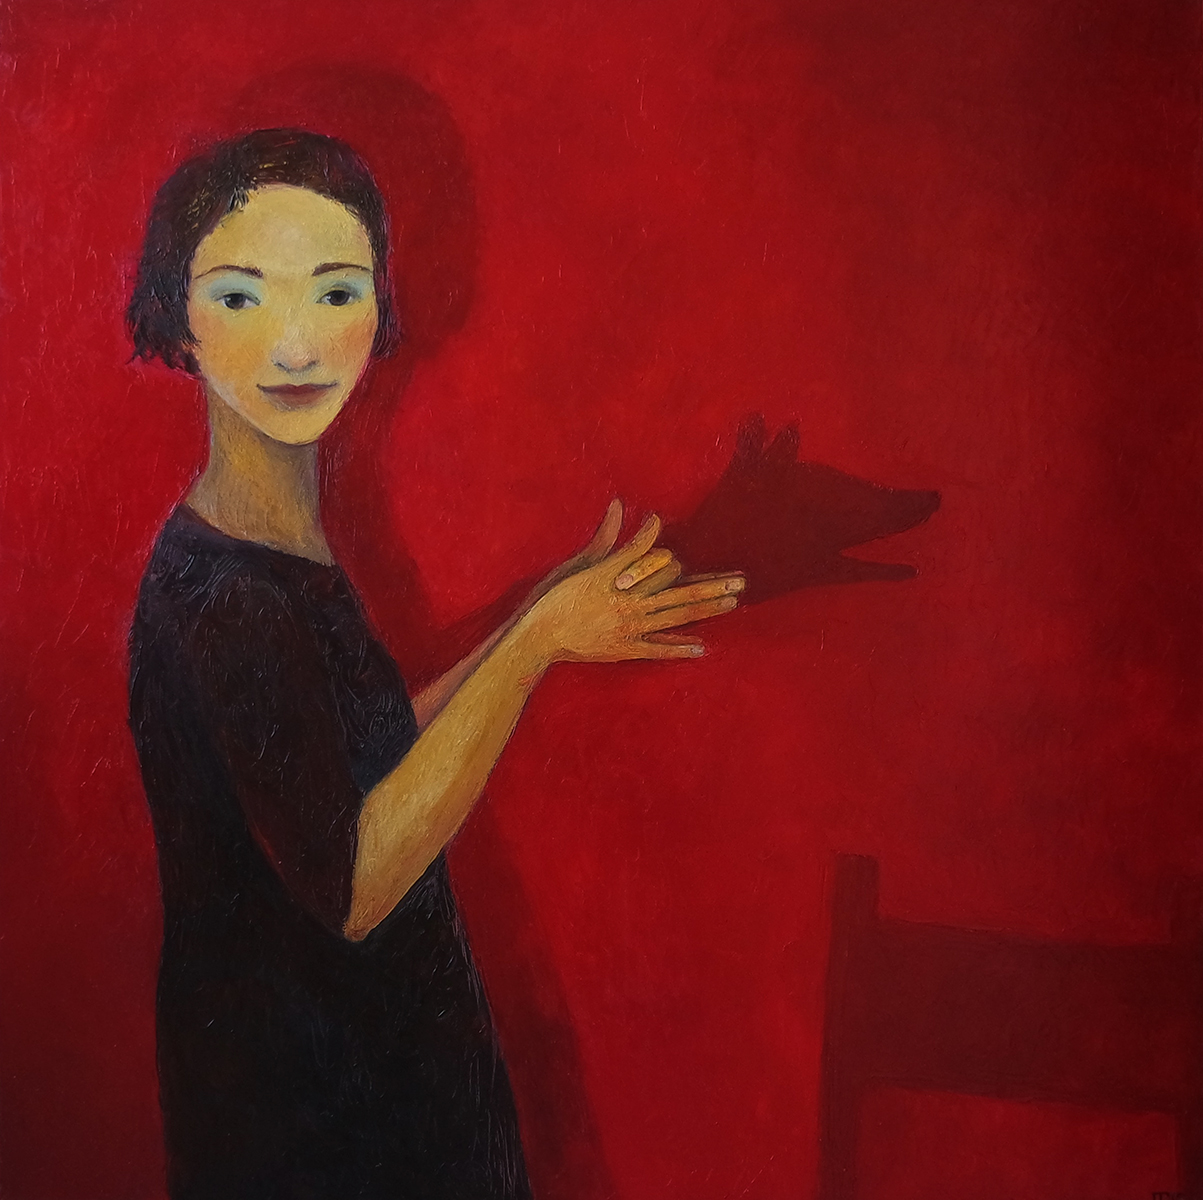 Doggy_Oil-Canvas_100x100_2550€_2015